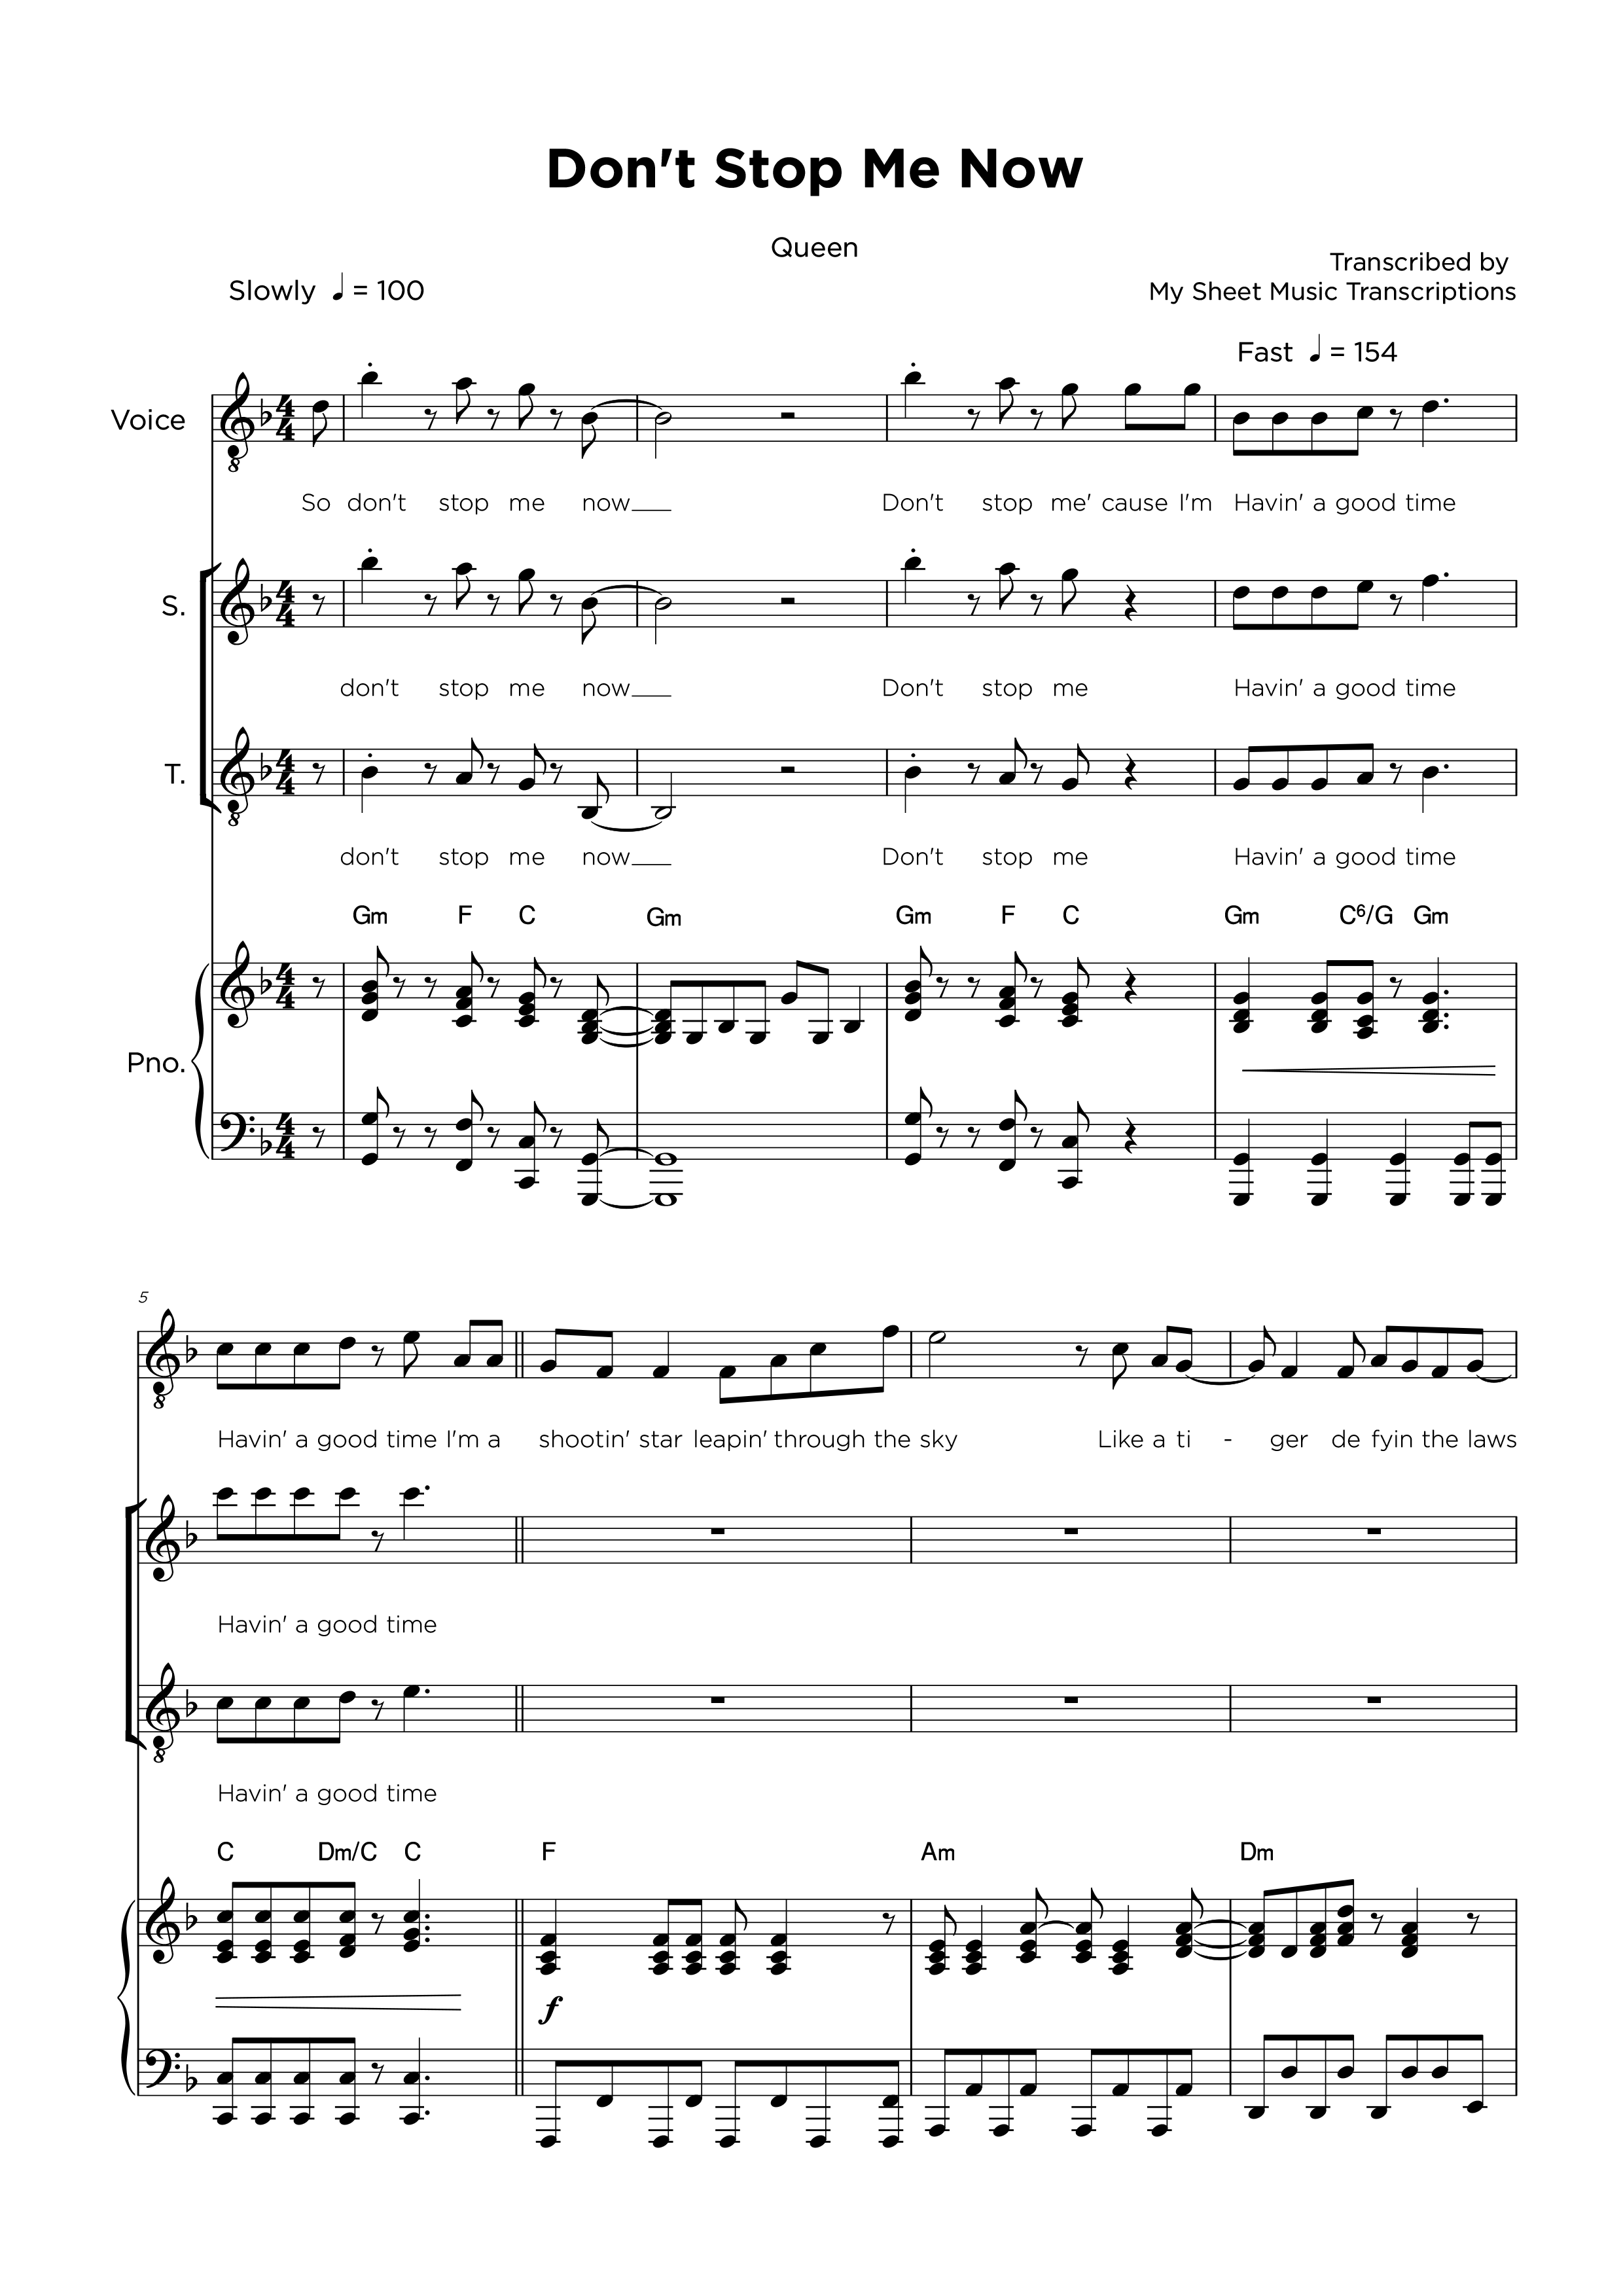 Don't Stop Me Now - Queen - Partitura para piano y vocal